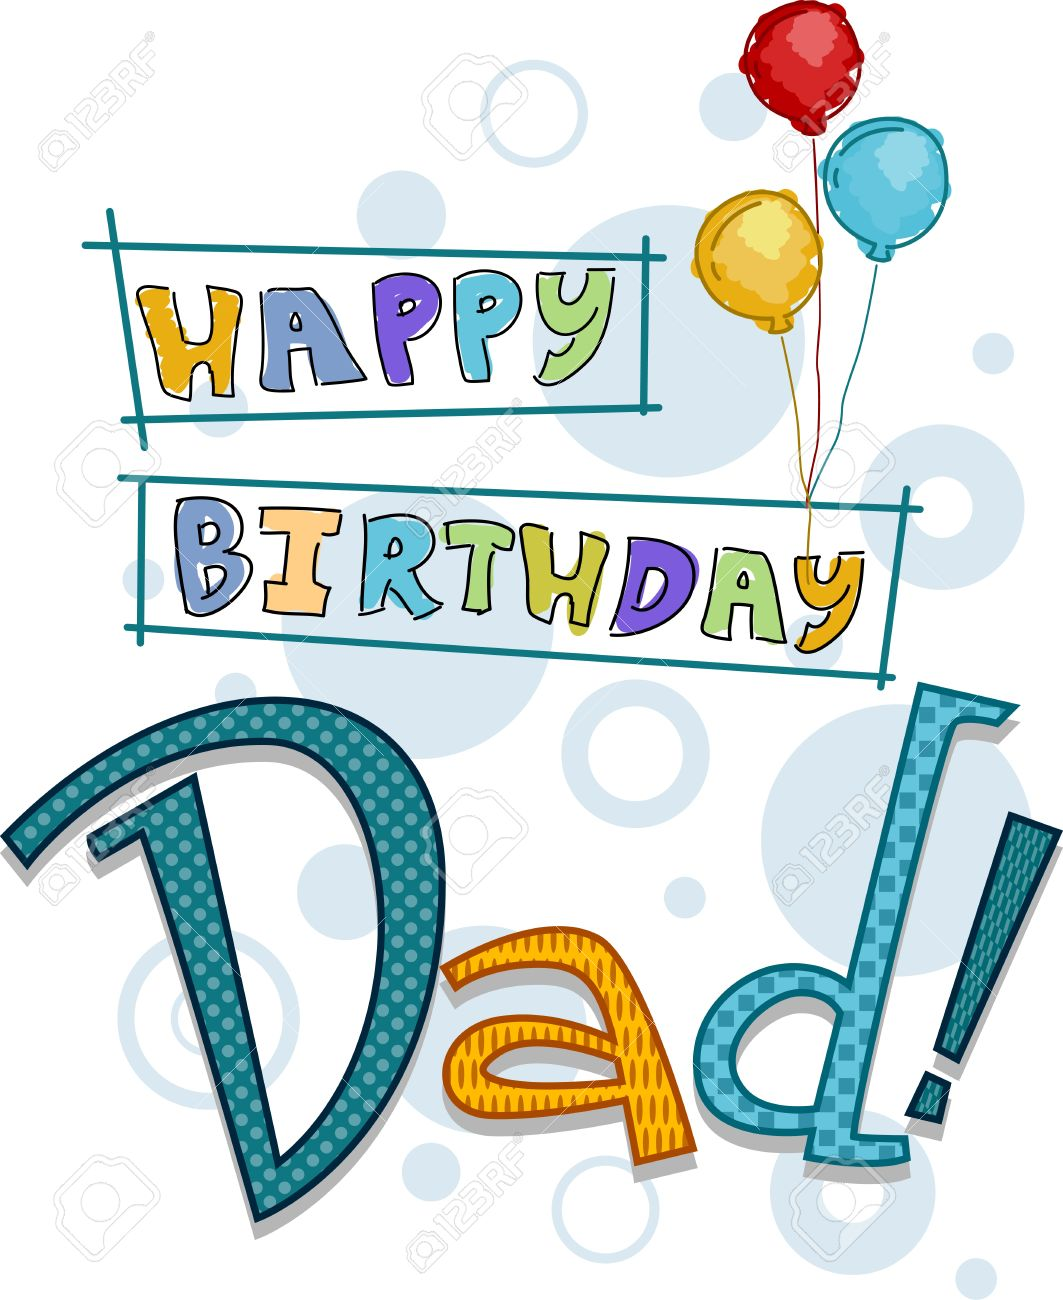 Text Featuring Birthday Greetings For Dad Stock Photo Picture And